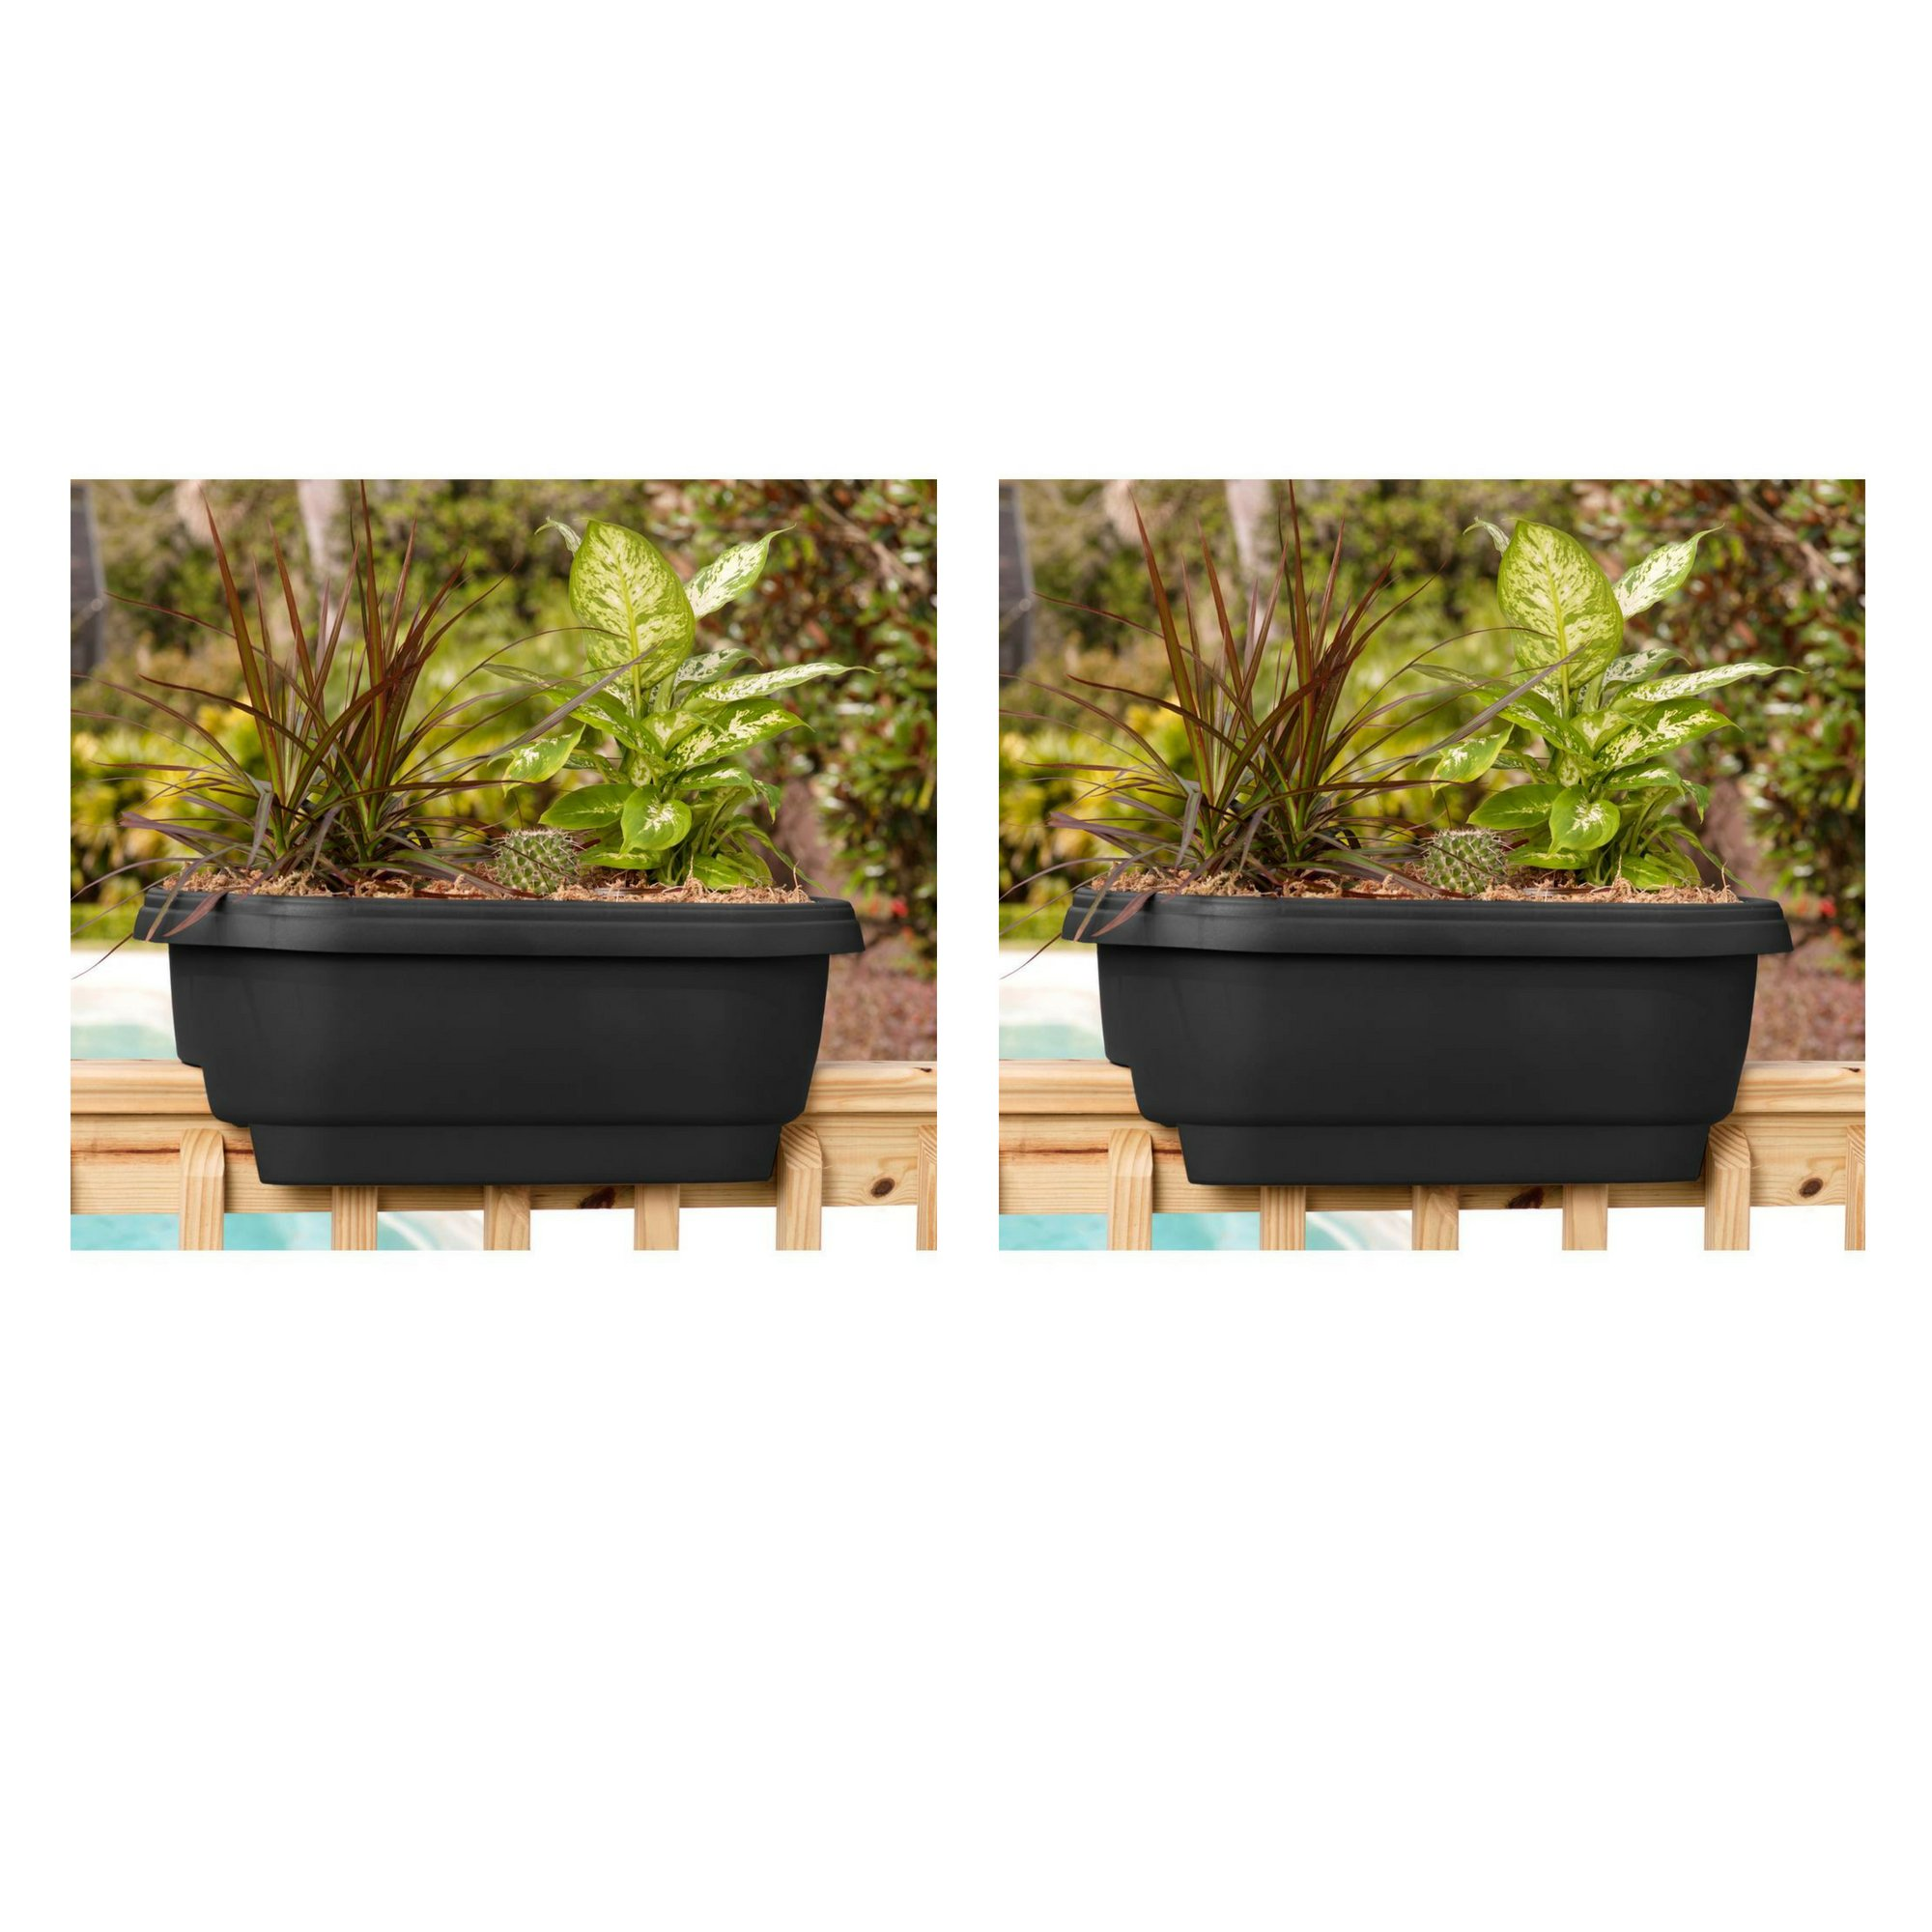 Bloem Deck 24 in. Balcony Rail Planter in Black - 2 Pack